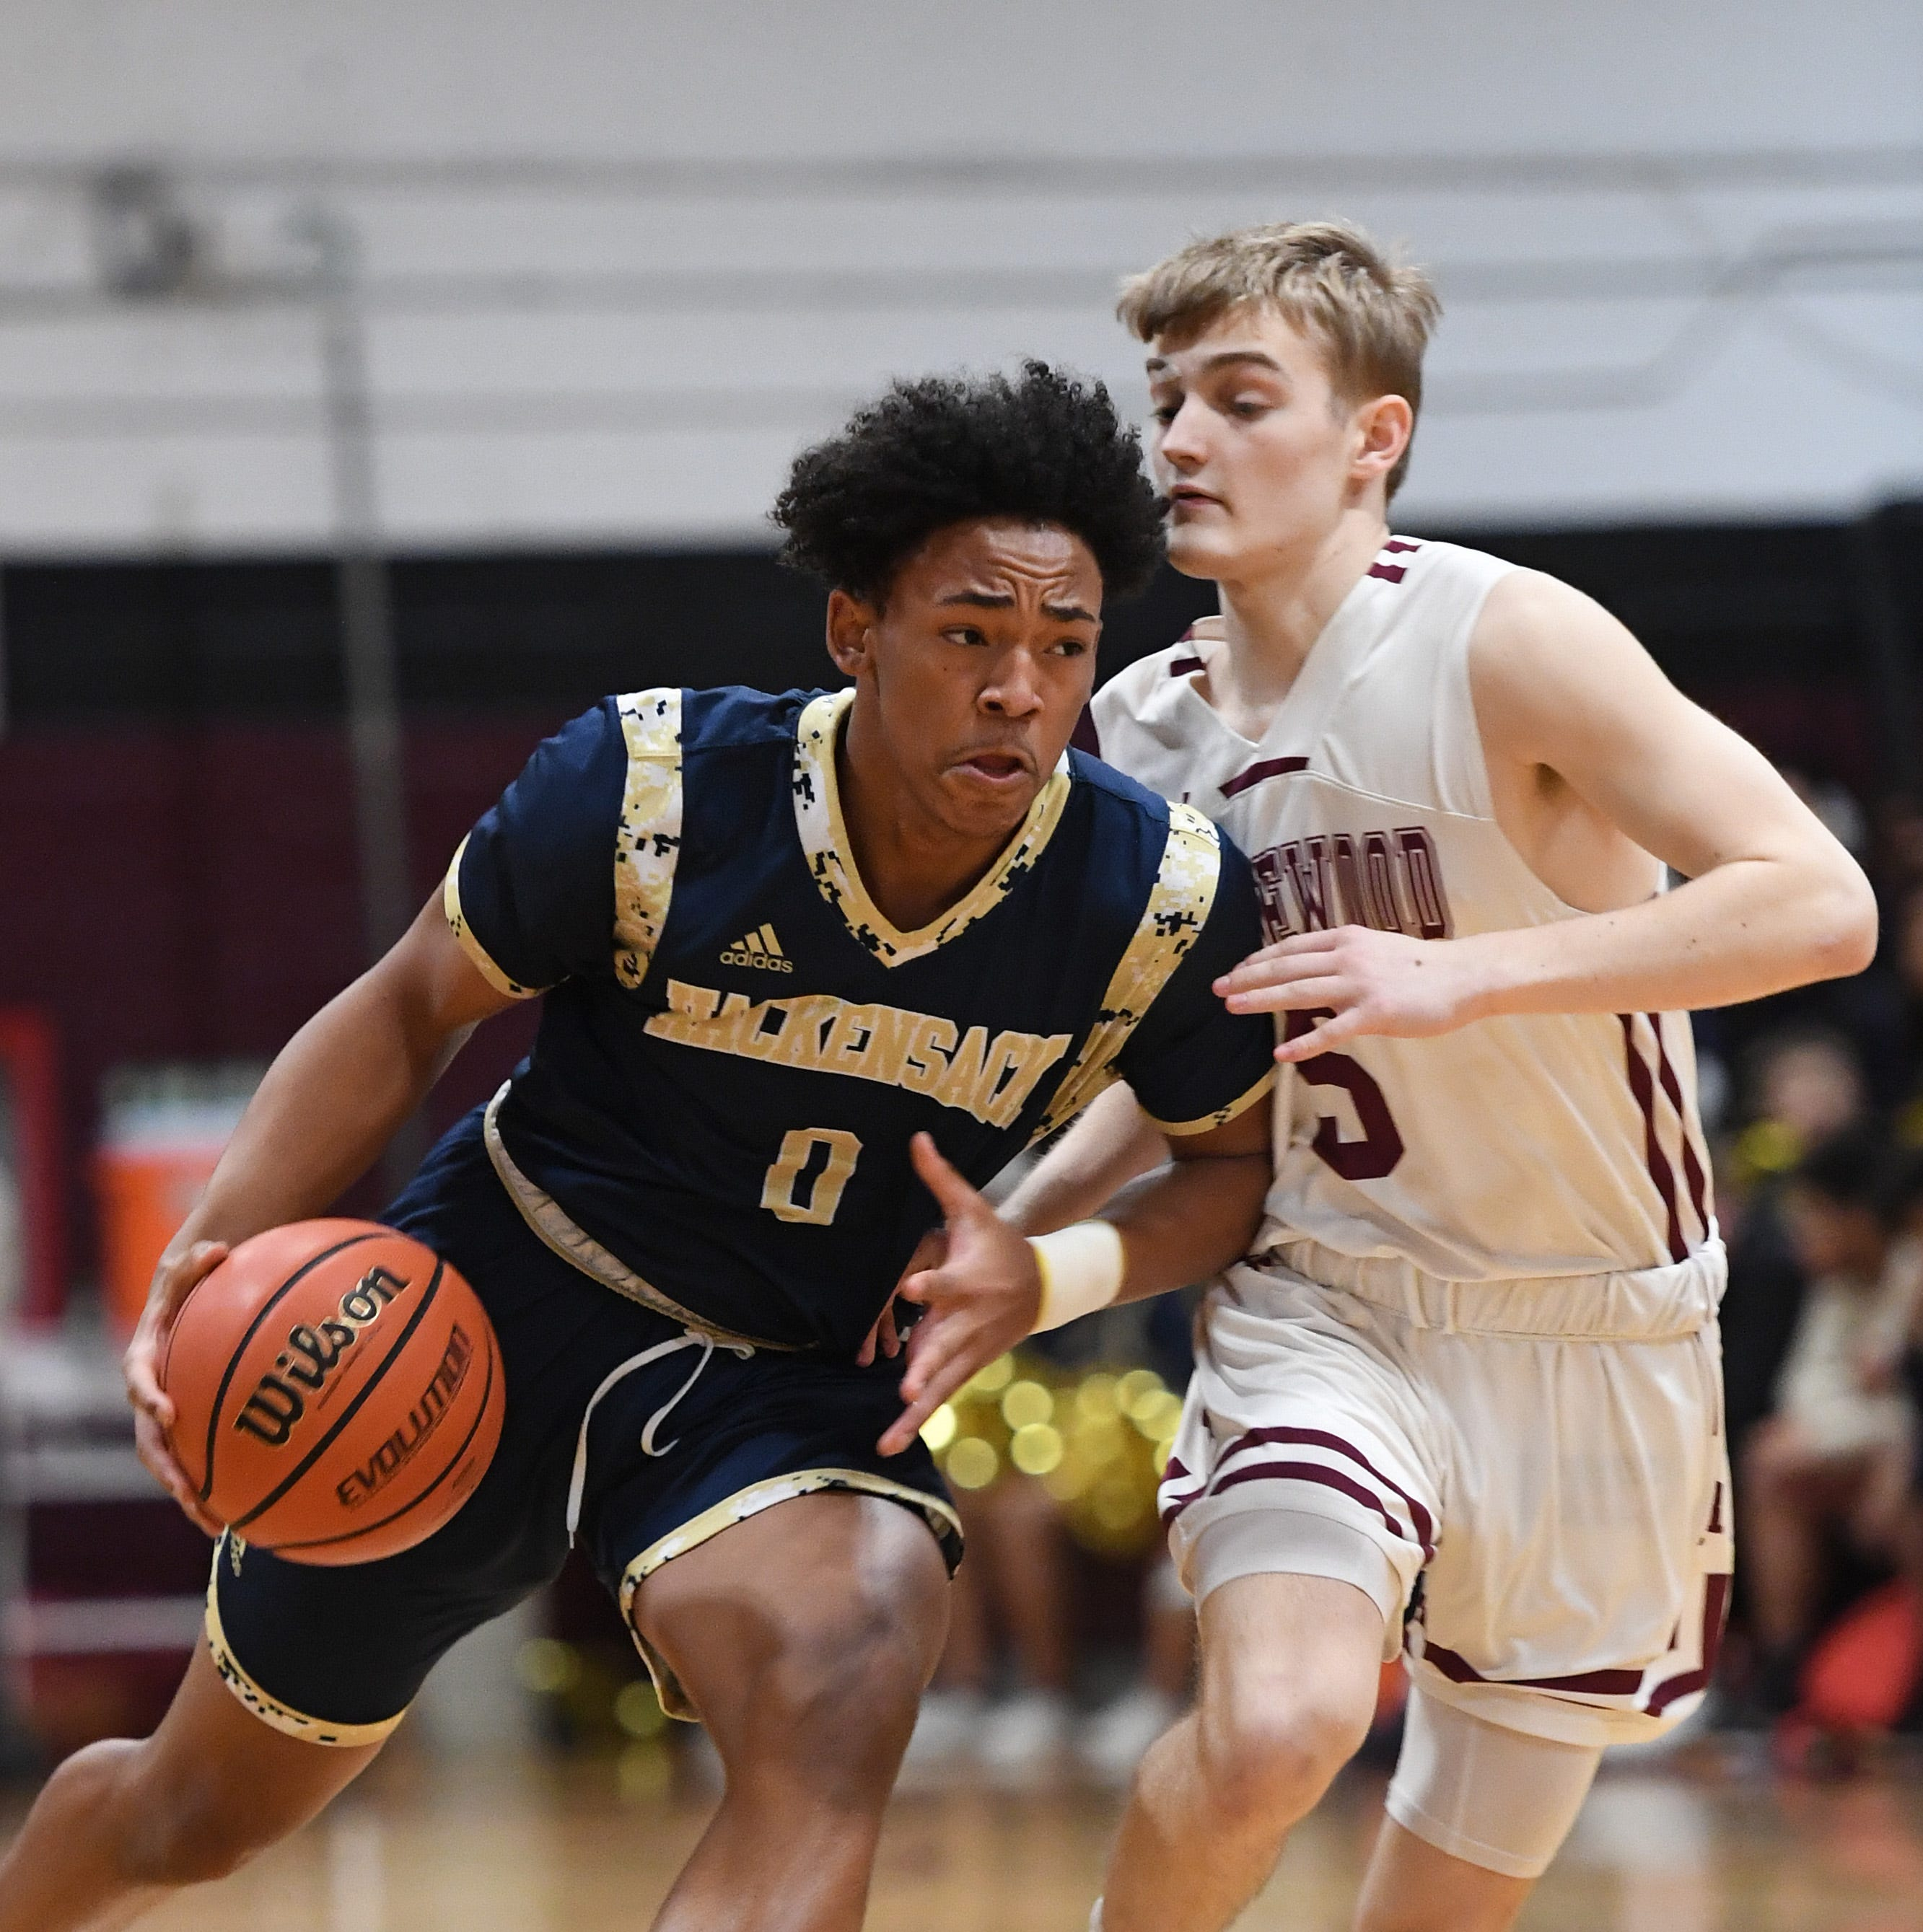 Vote for the North Jersey Basketball Player of the Week for Feb. 24-March 2